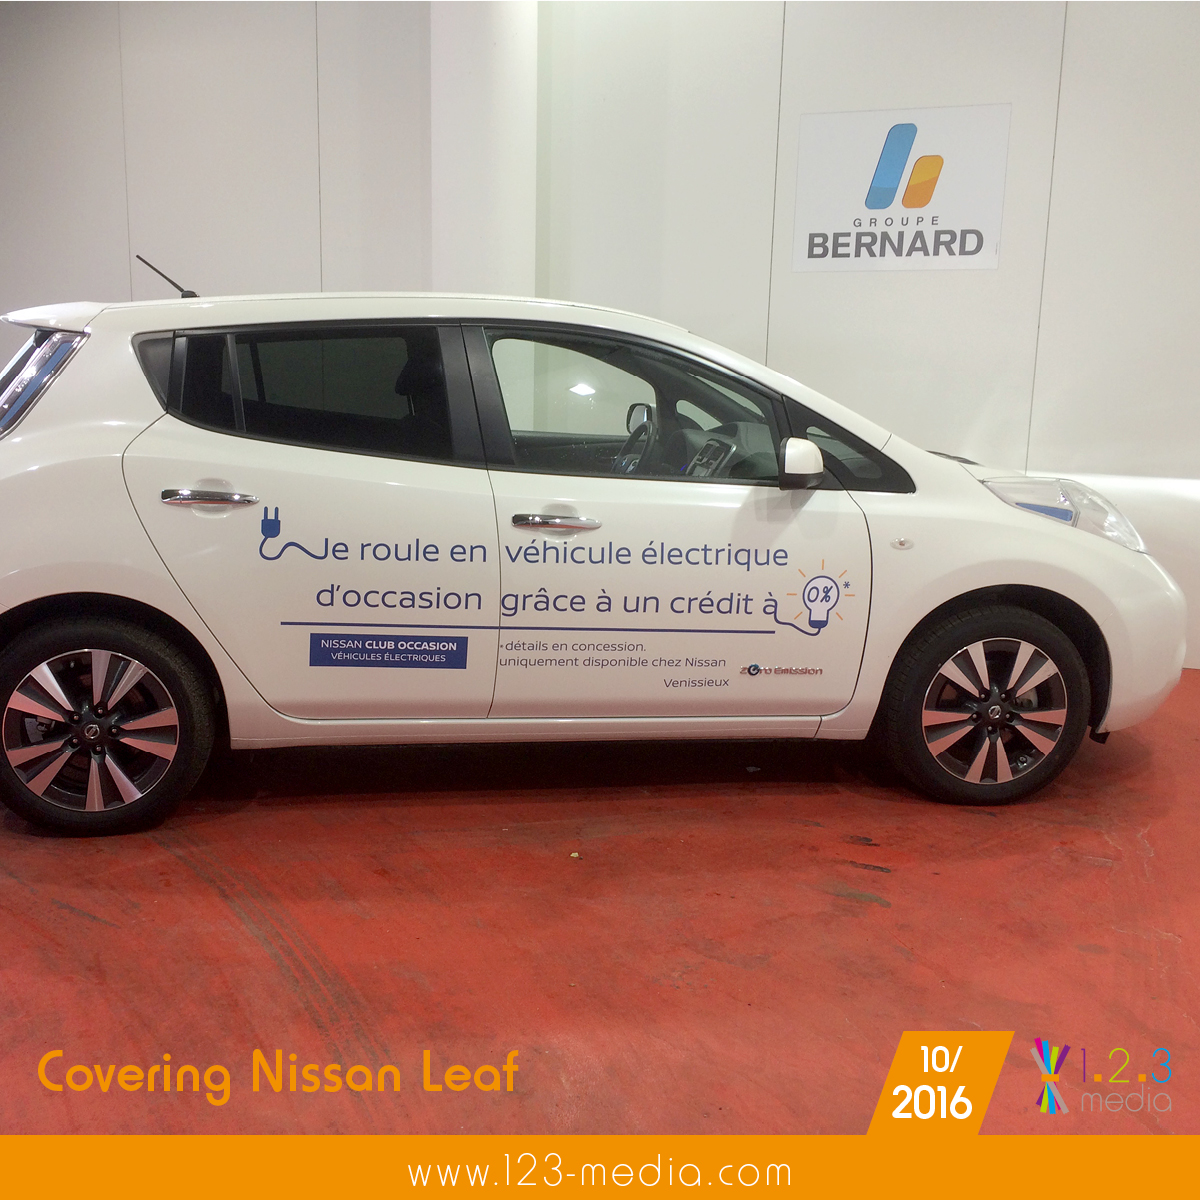 covering nissan leaf